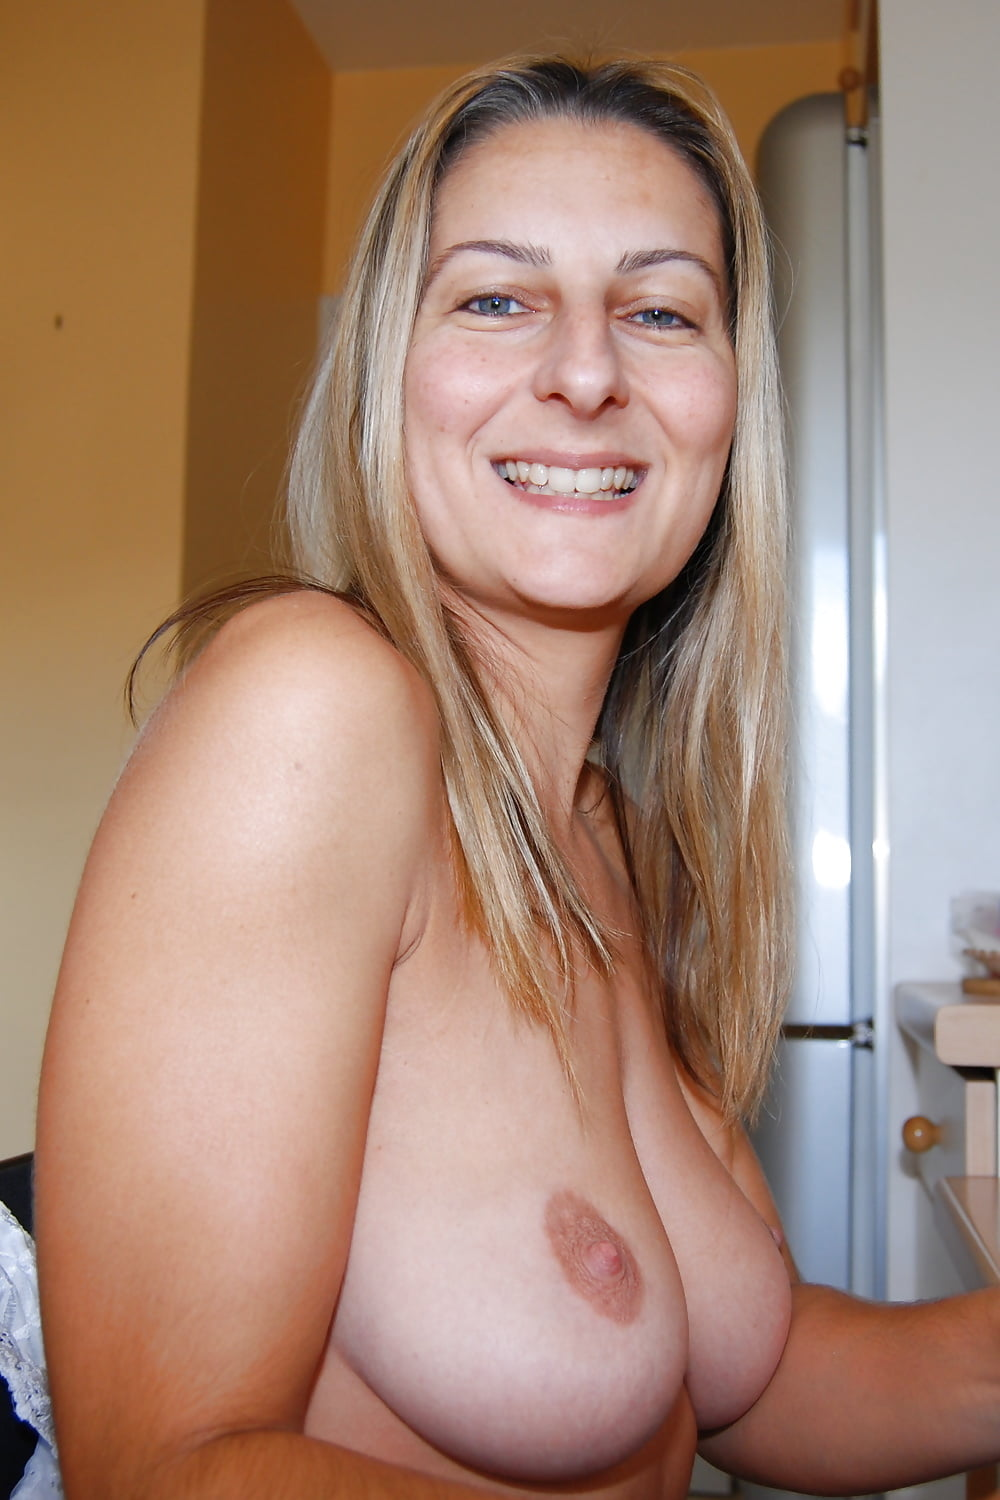 Images of hot milfs with saggy boobs — pic 6